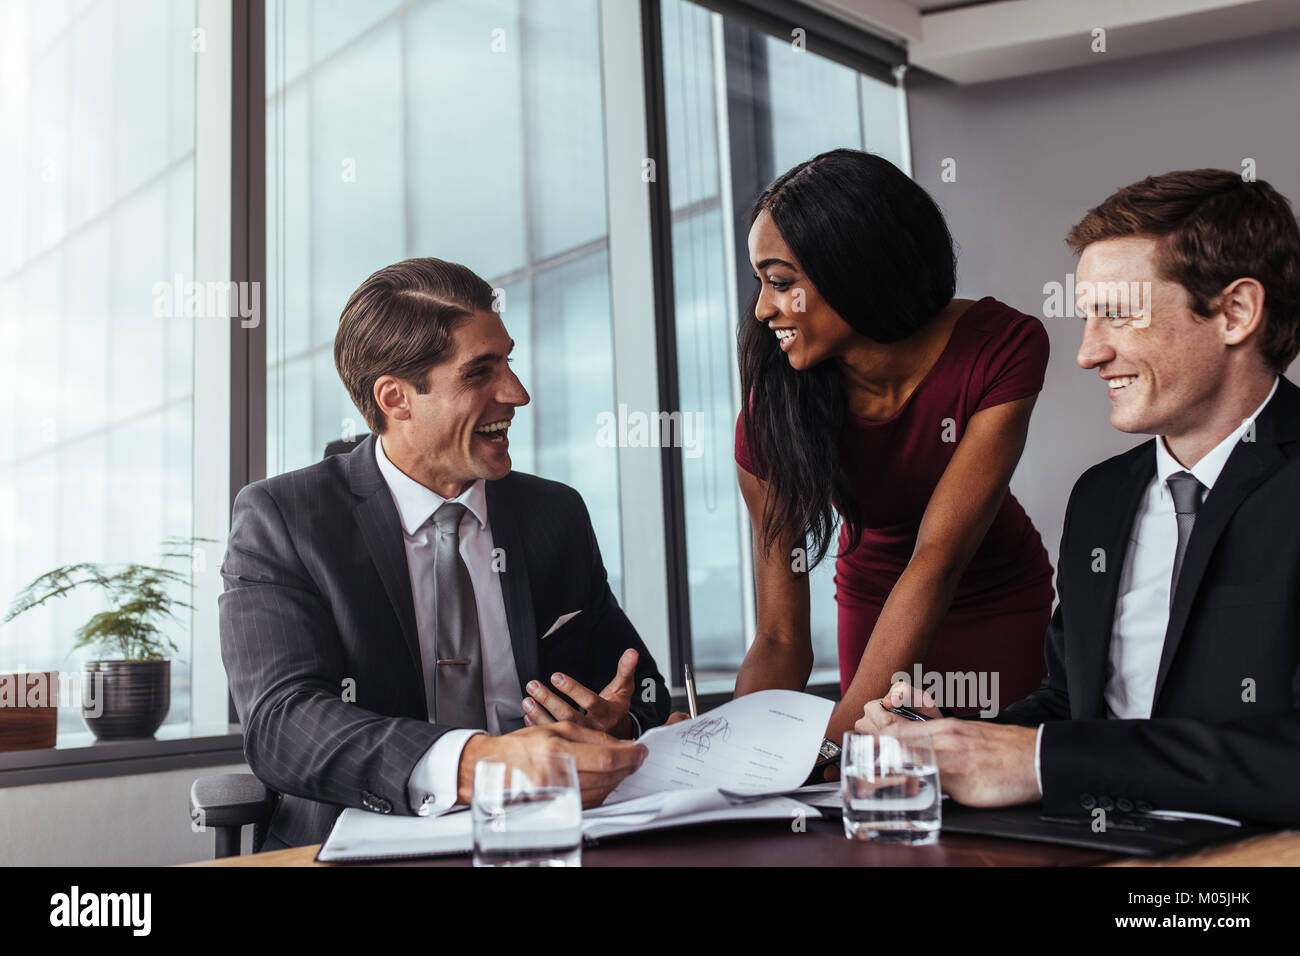 Corporate business professionals having a meeting in office and working on documents. Business people signing a - Stock Image